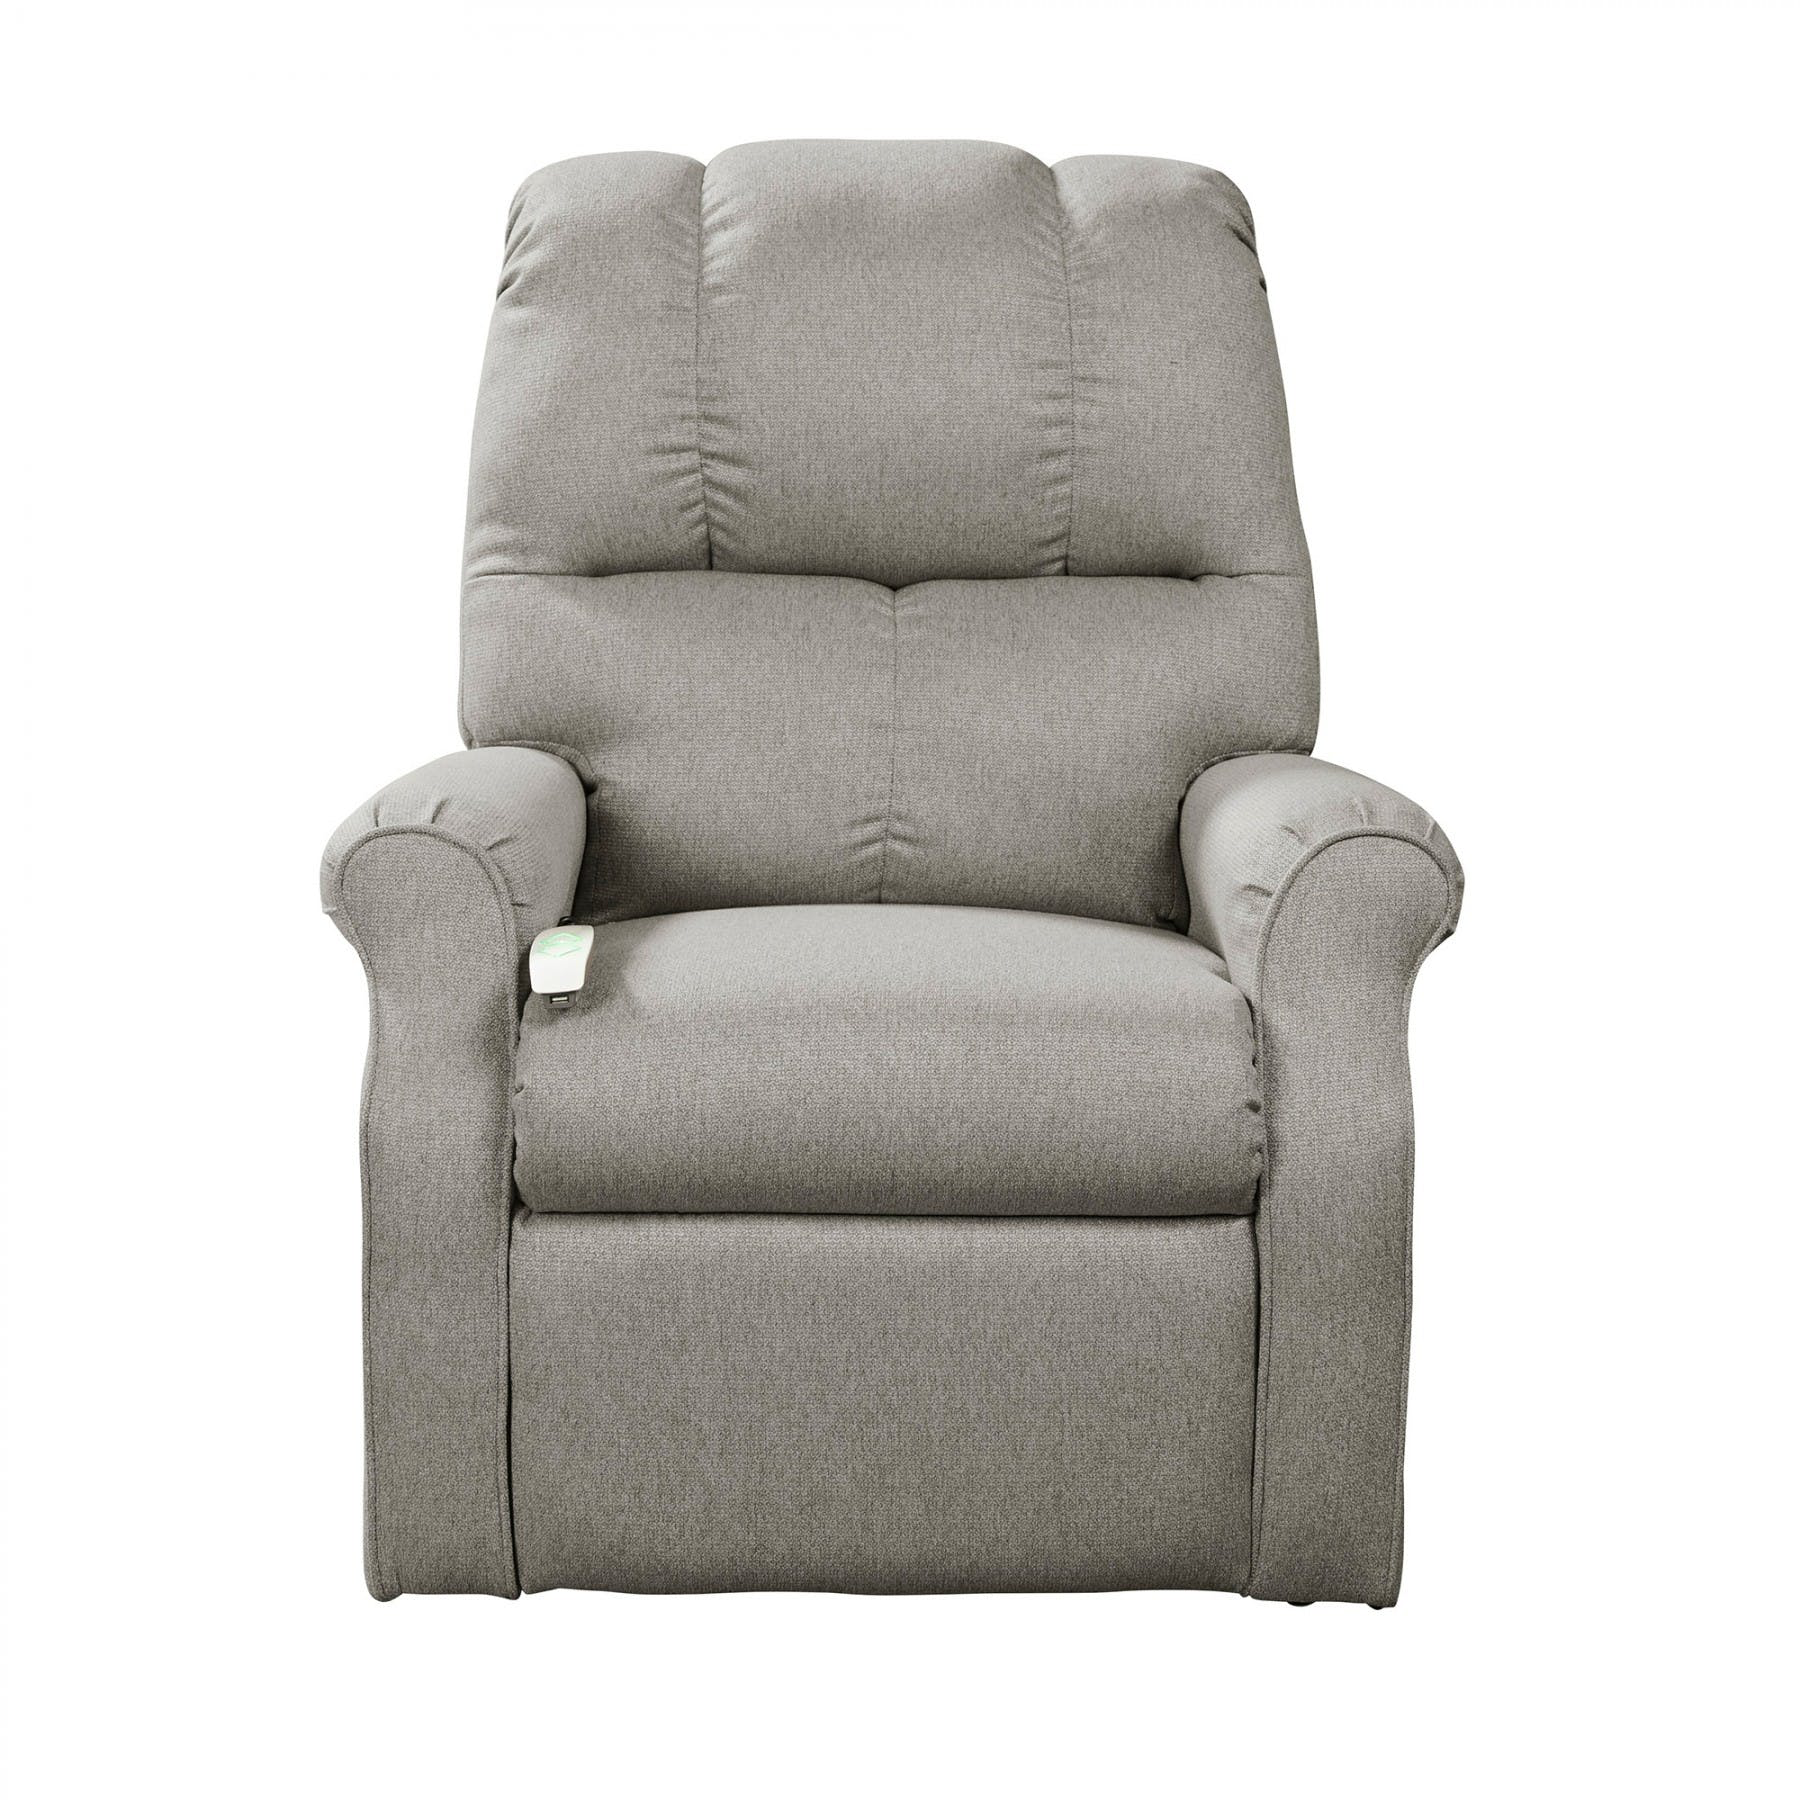 Groovy Pocono Power Lift Recliner Ocoug Best Dining Table And Chair Ideas Images Ocougorg